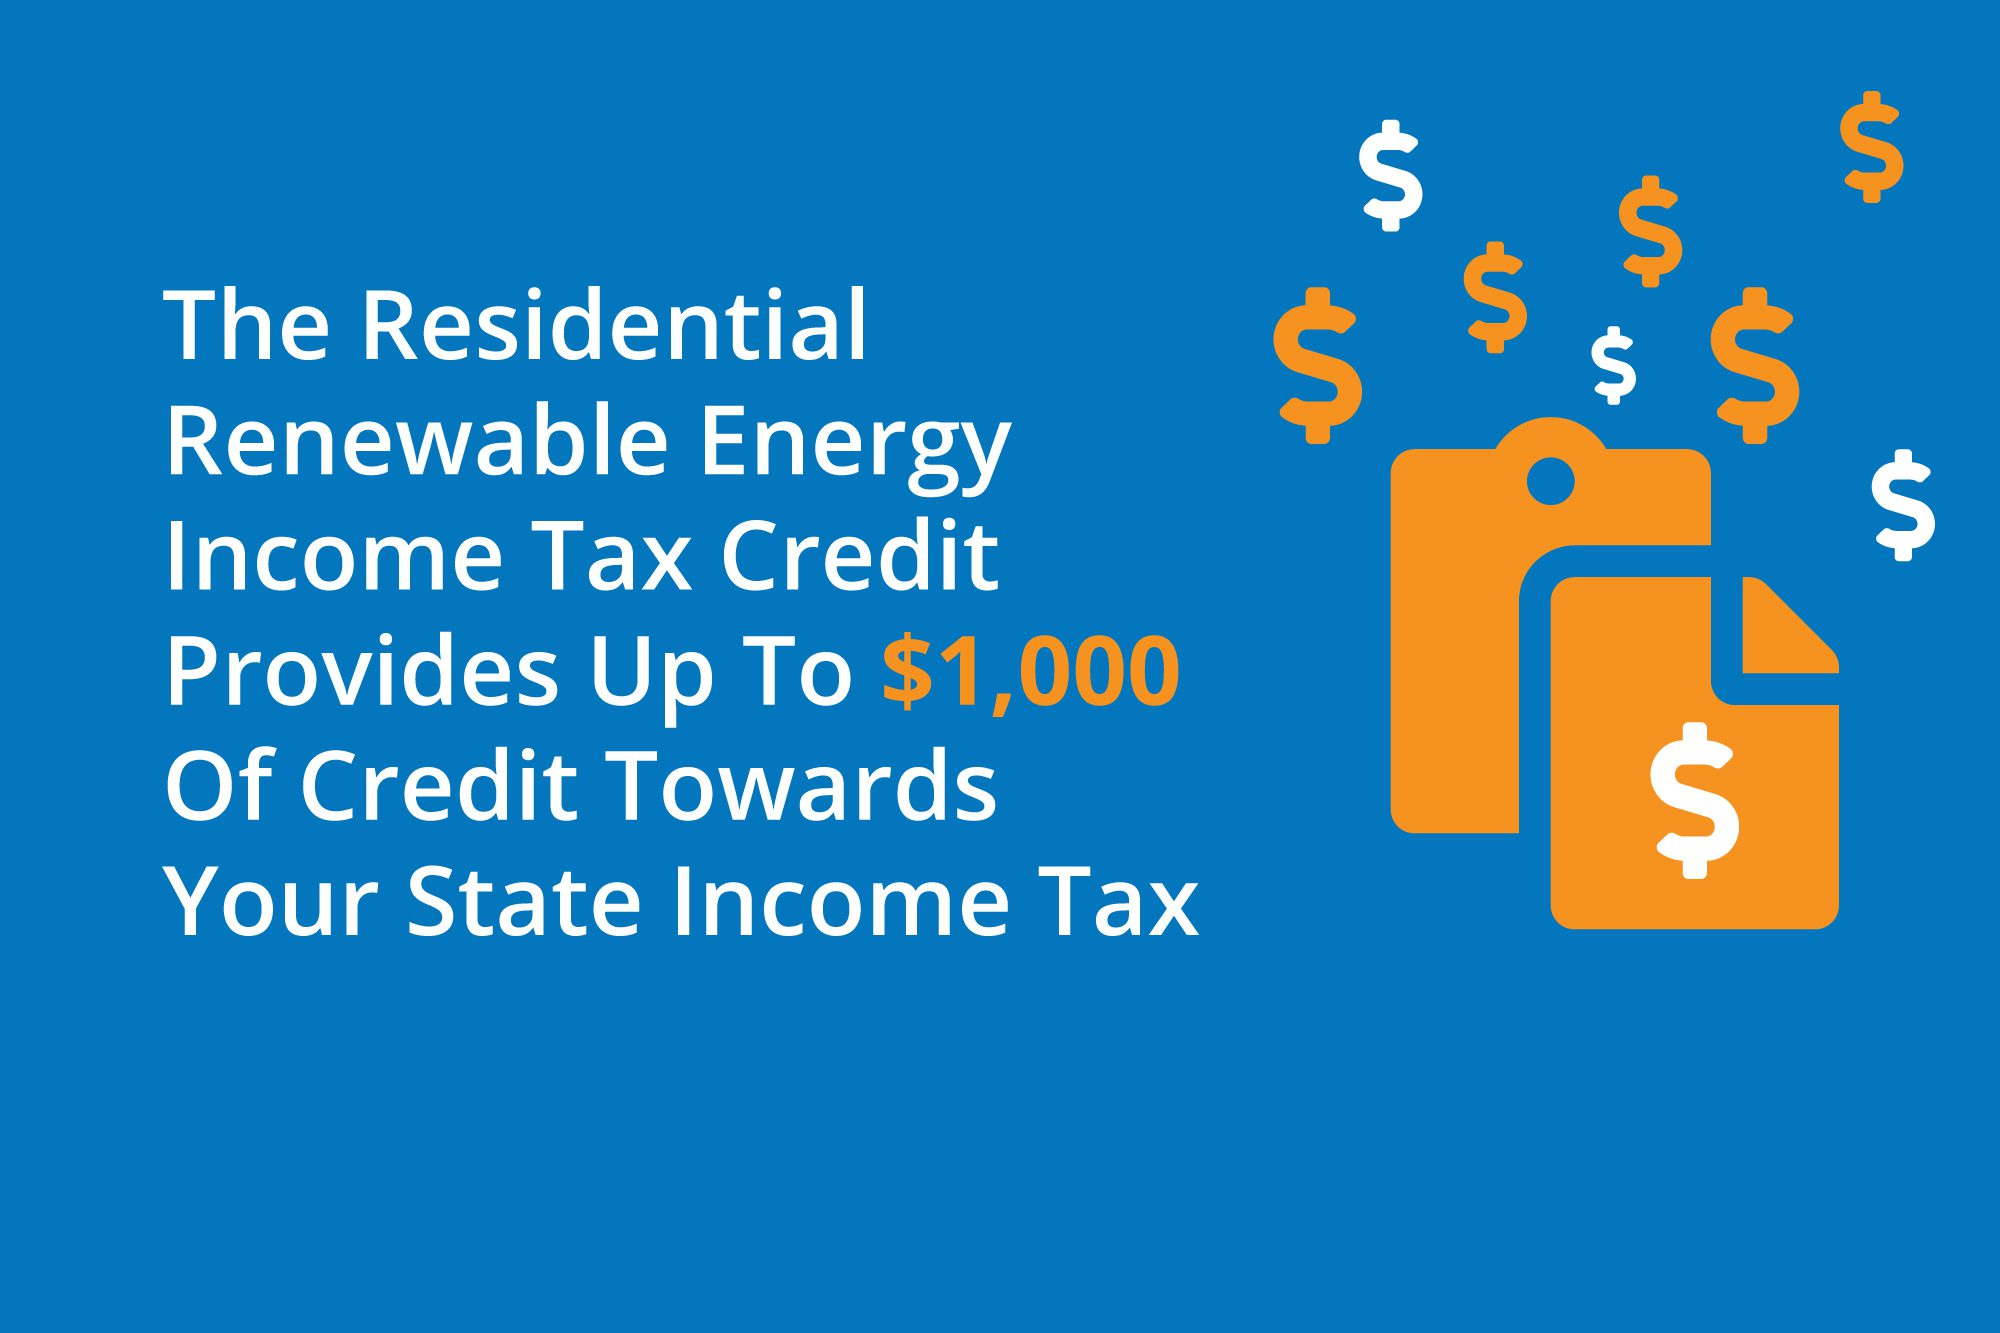 An infographic with information about solar tax credits